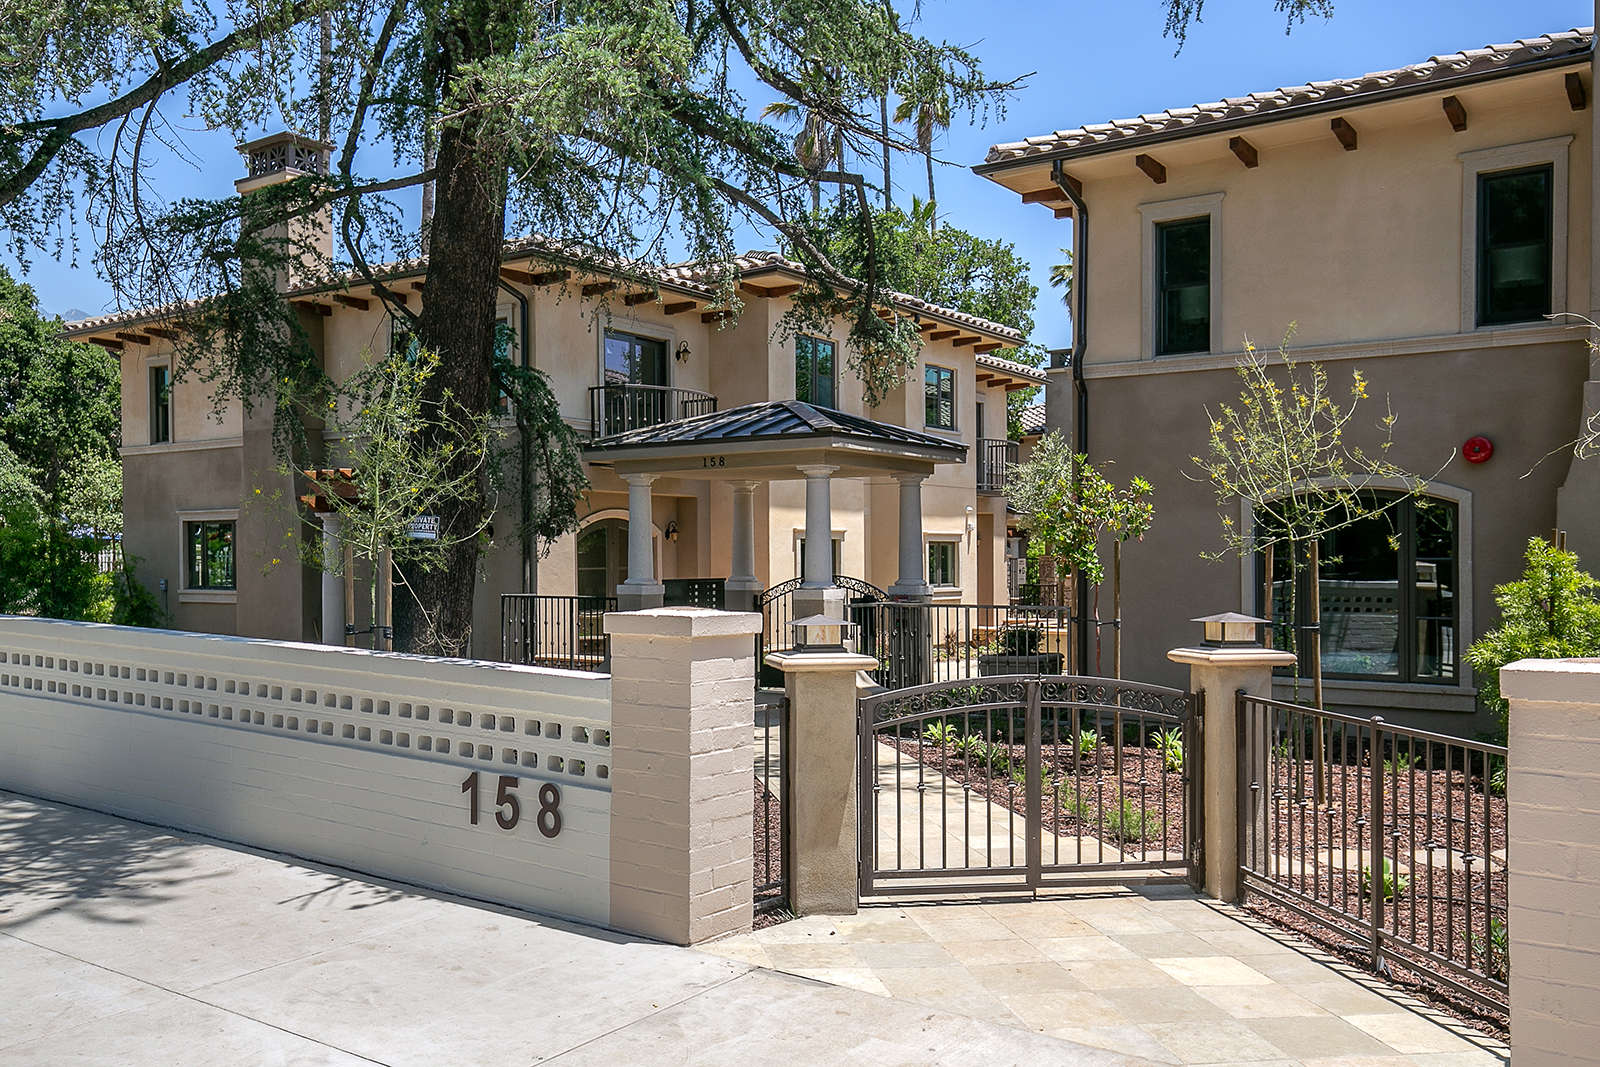 Pasadena - Real Estate and Apartments for Sale | Christie's